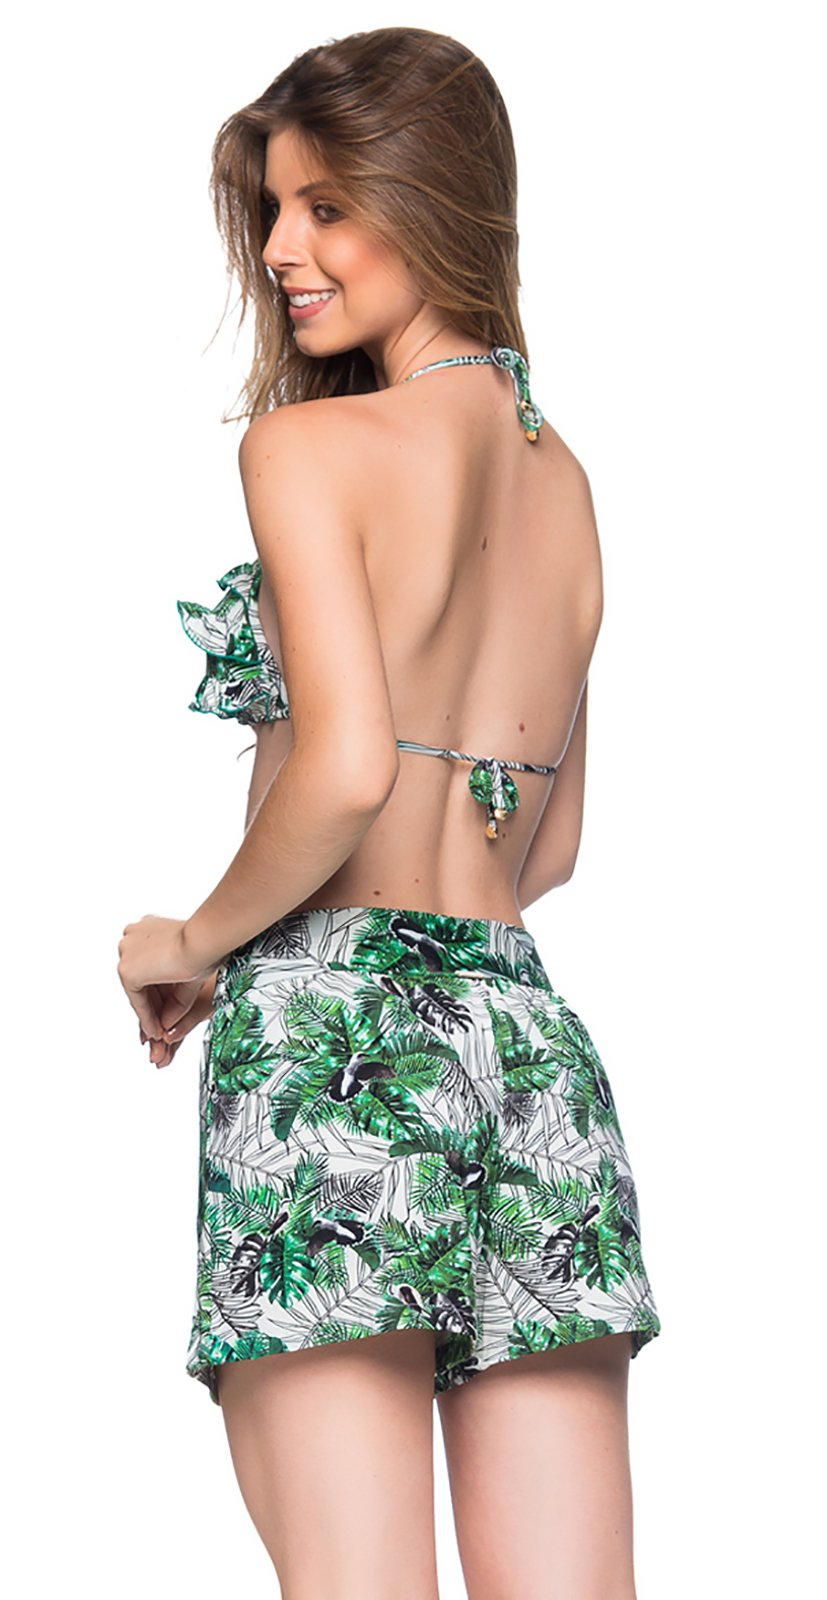 1d518d5ce4 ... Green foliage set: ruffled triangle top & beach short - BABADO VIUVINHA